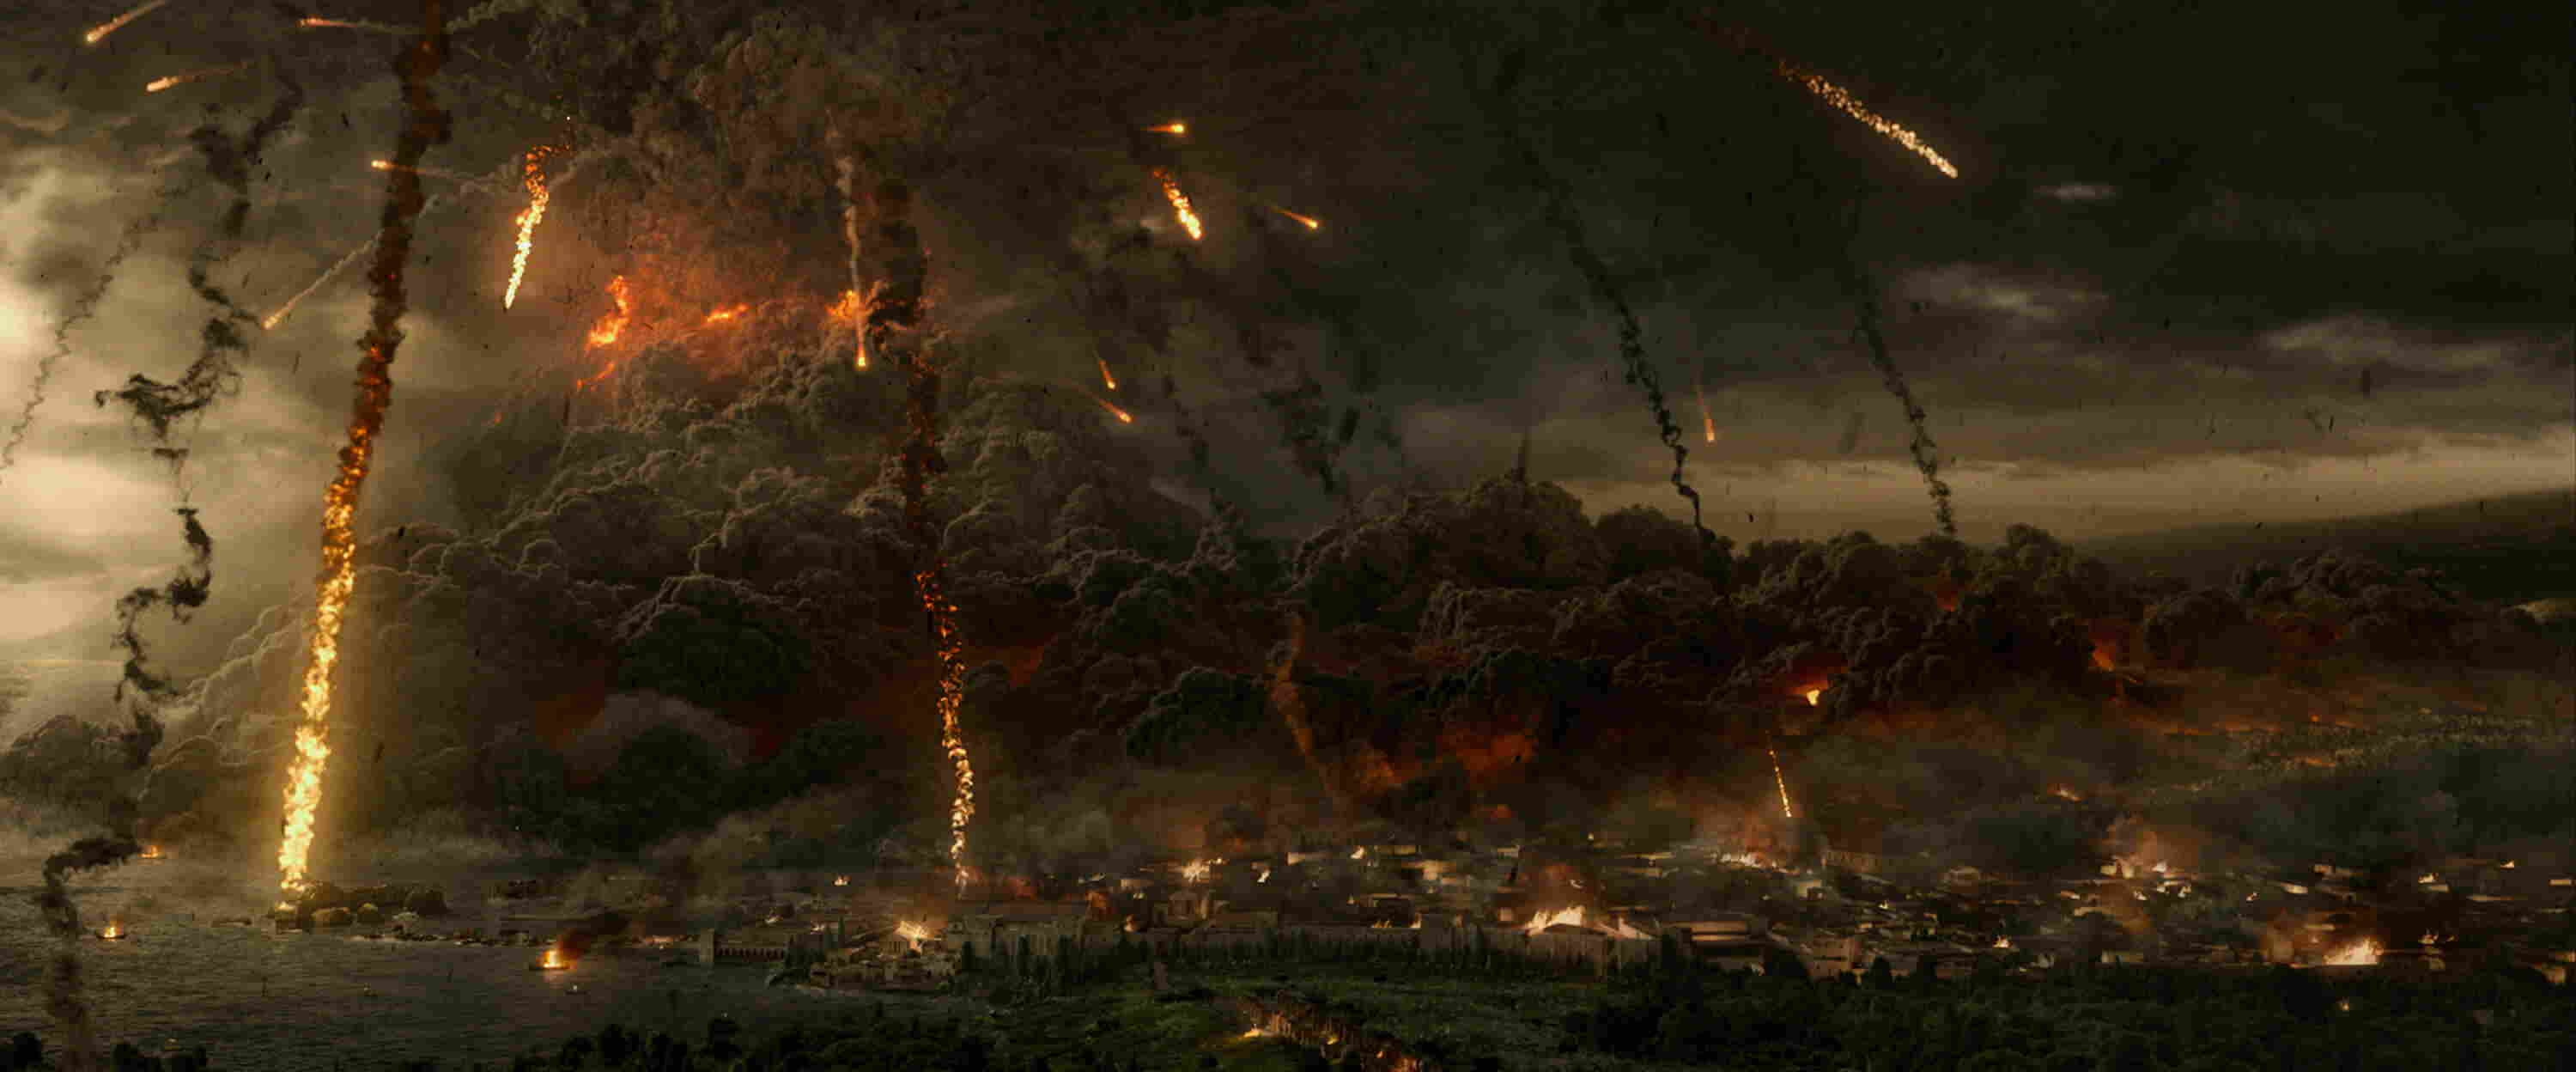 How Accurate is the Pompeii Movie to Reality?